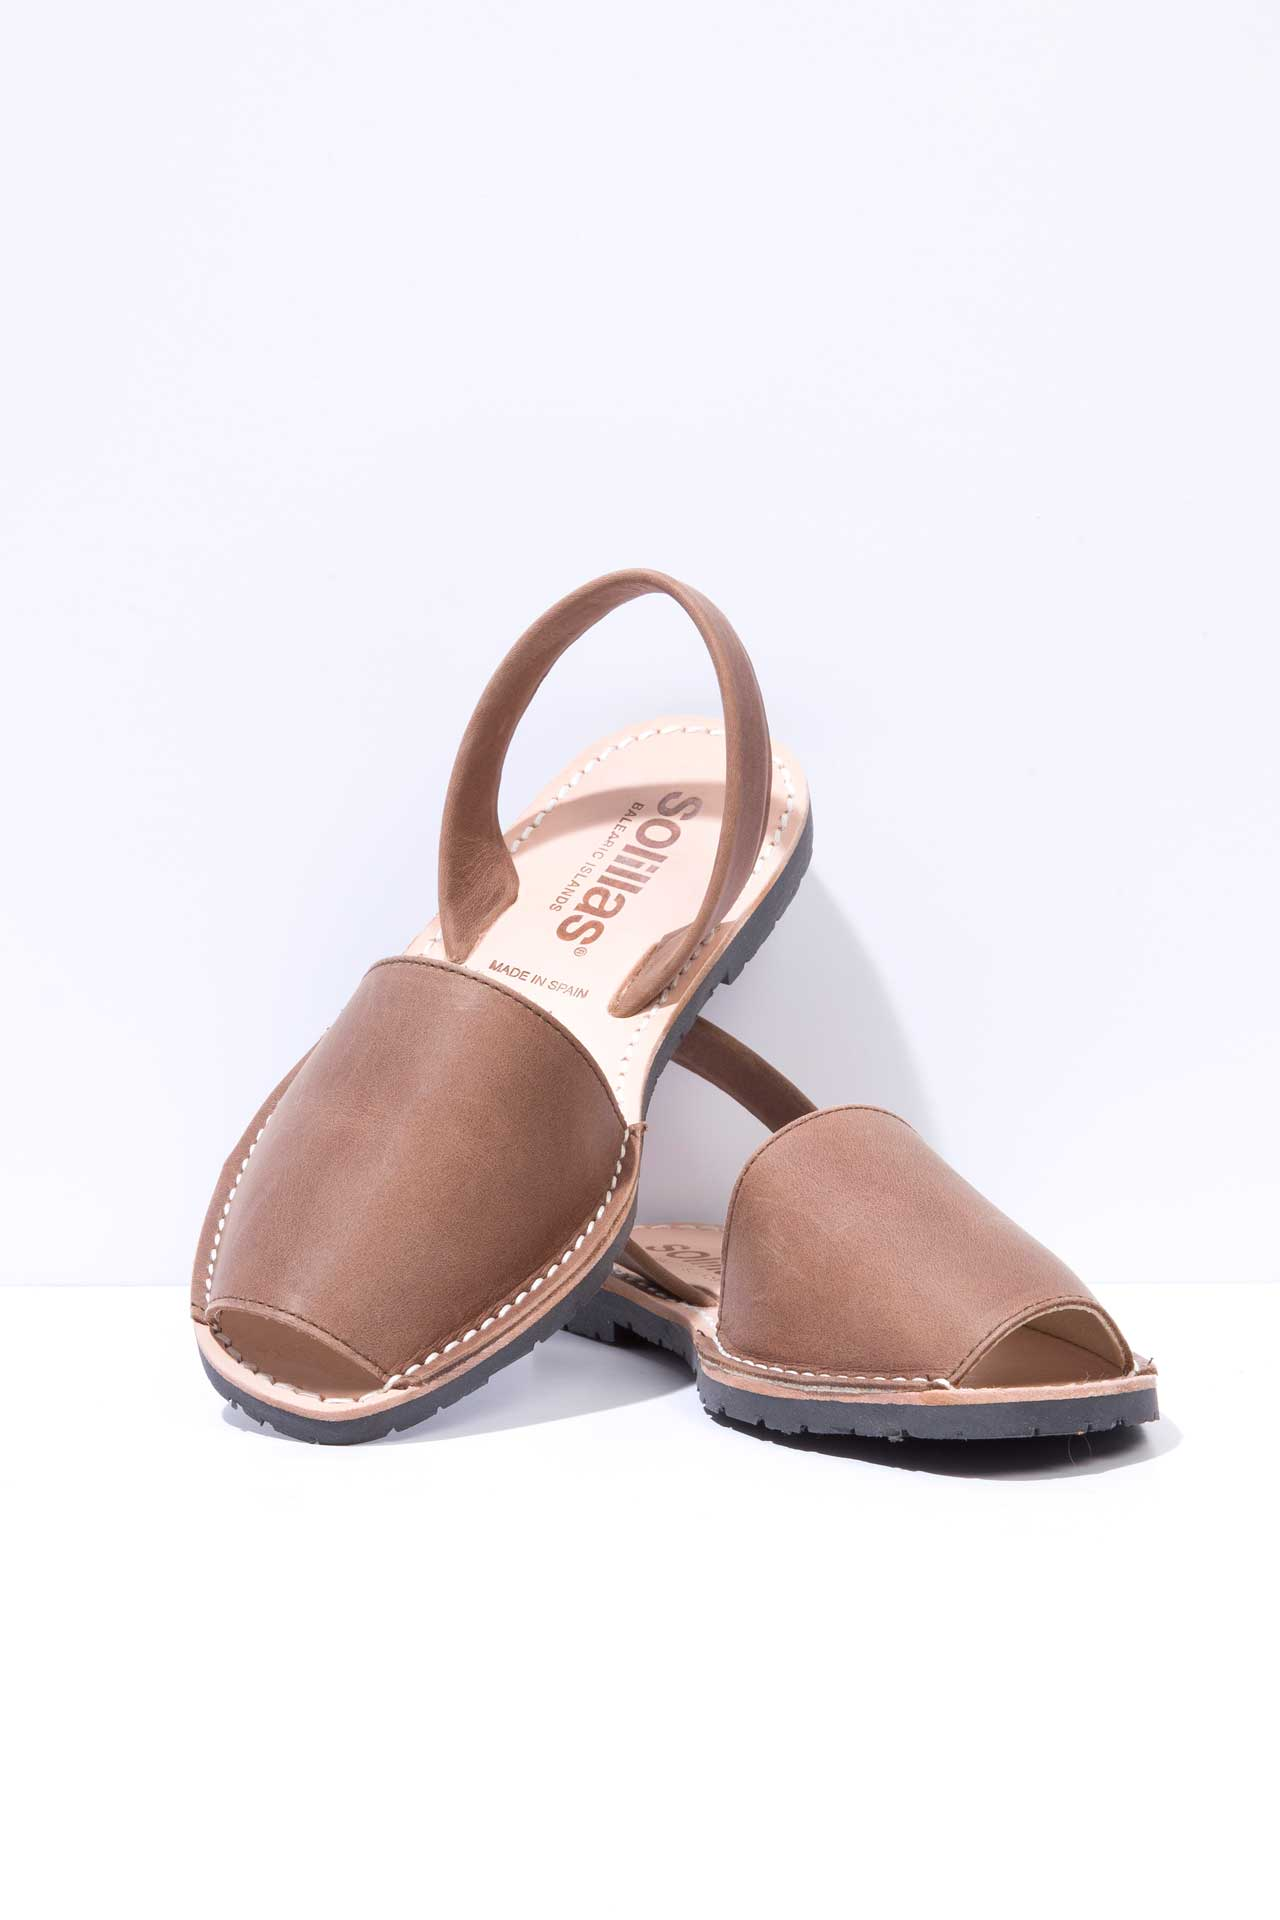 Bohemia - Distressed Leather Menorcan sandals